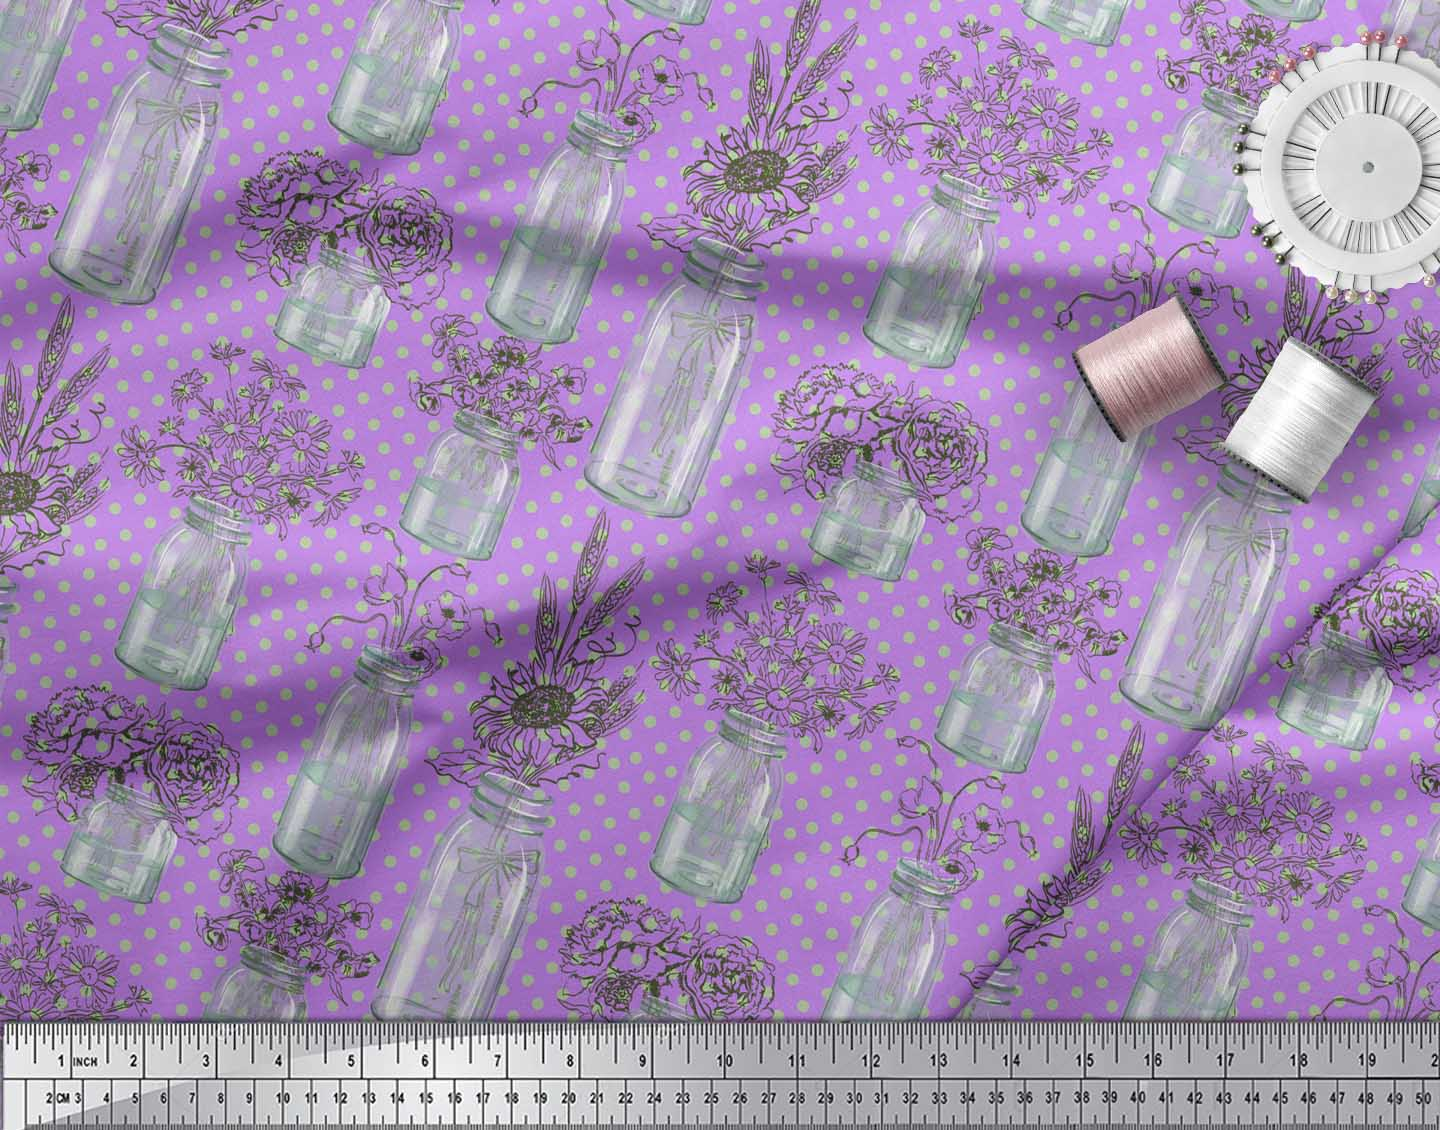 Soimoi-Purple-Cotton-Poplin-Fabric-Bottle-Vase-amp-Sunflower-Dots-4Ah thumbnail 3